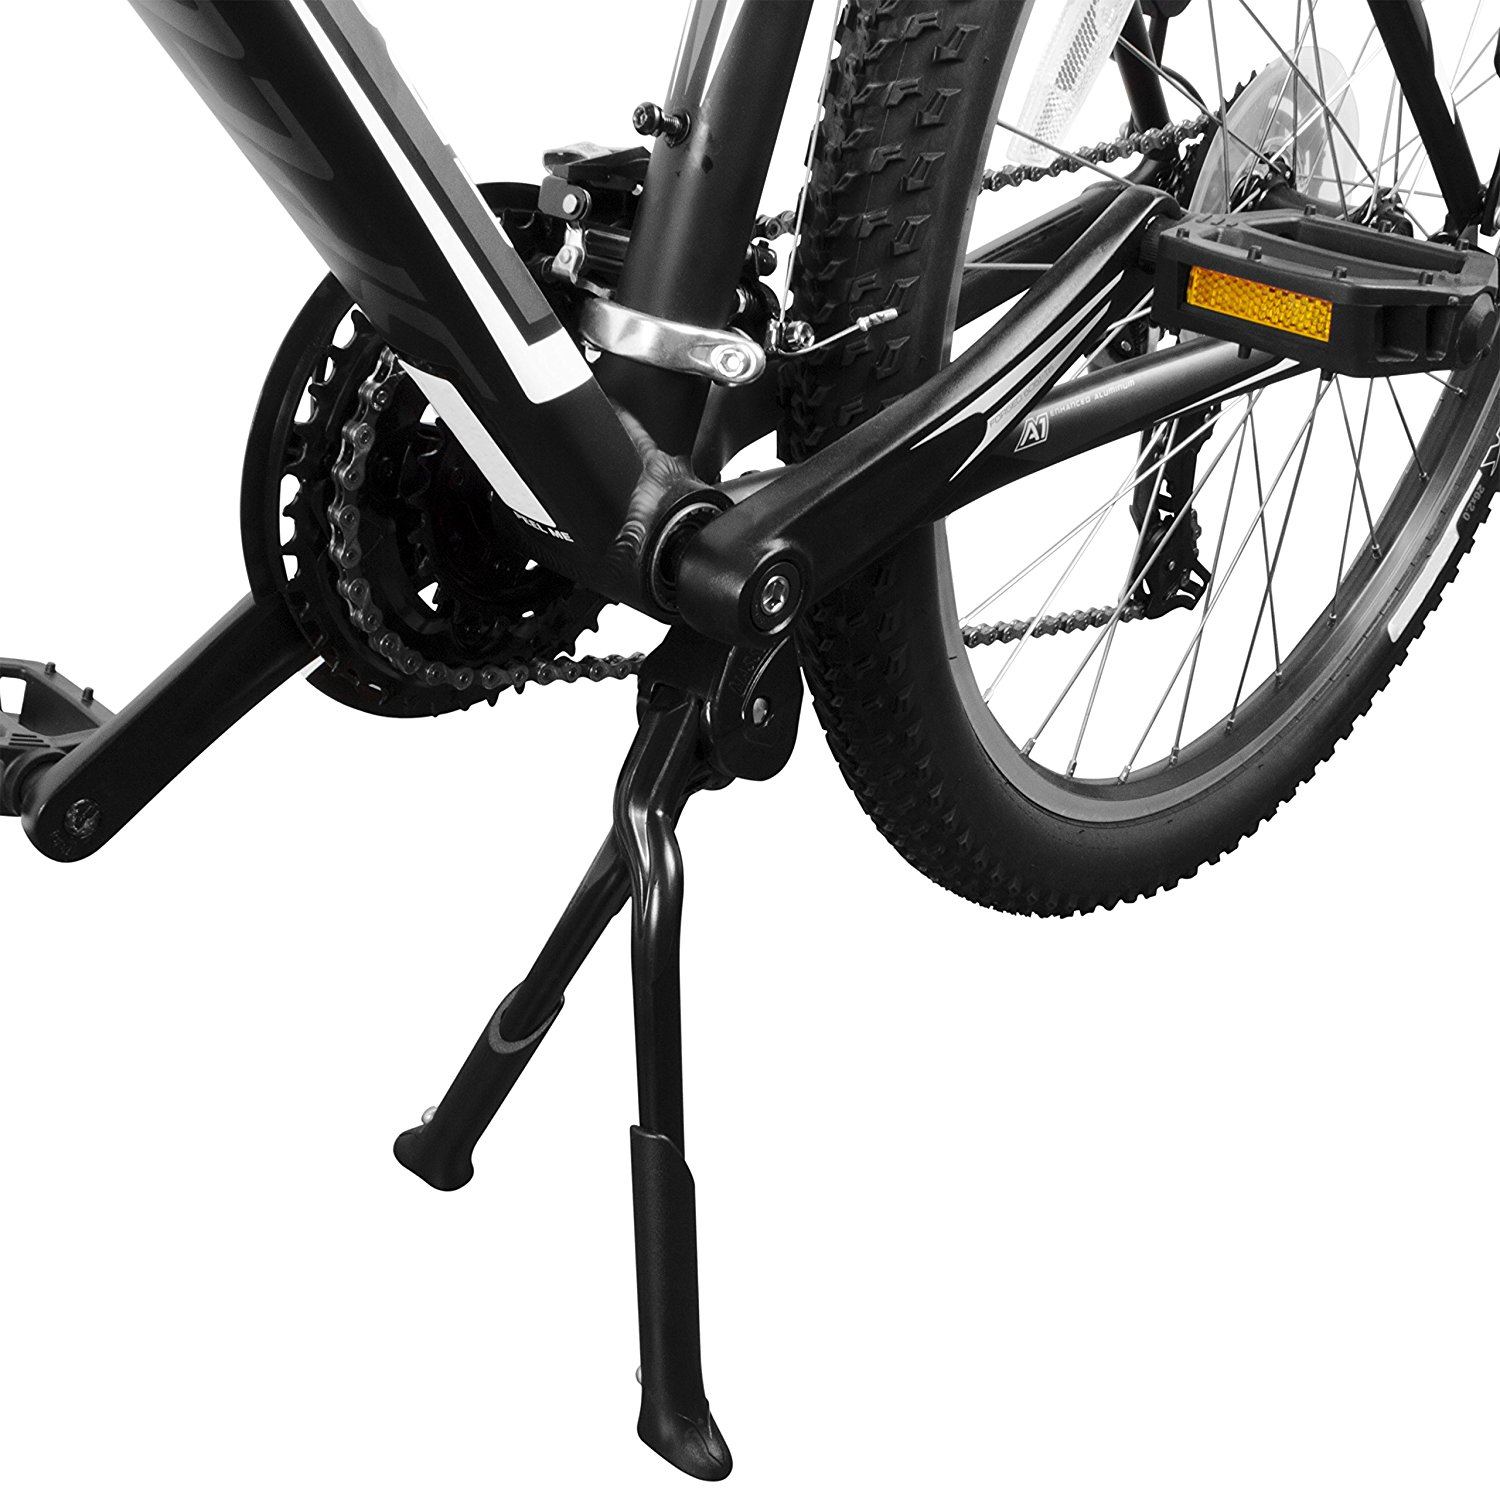 BV-Bicycle-Black-Adjustable-Foldable-Double-Leg-Kickstand-Storage